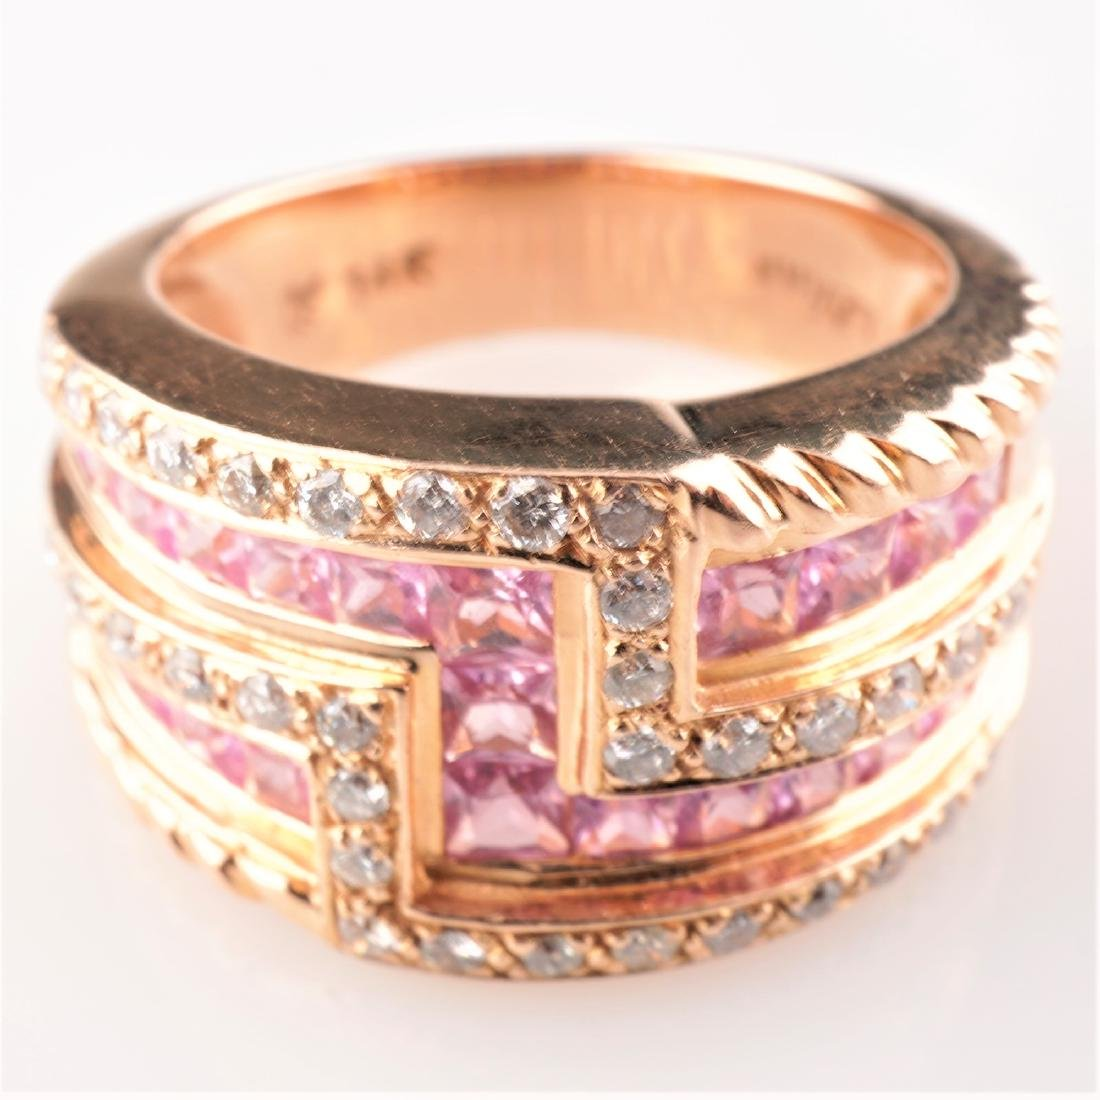 14k Rose Gold Le Vian Diamond and Sapphire Ring - 2